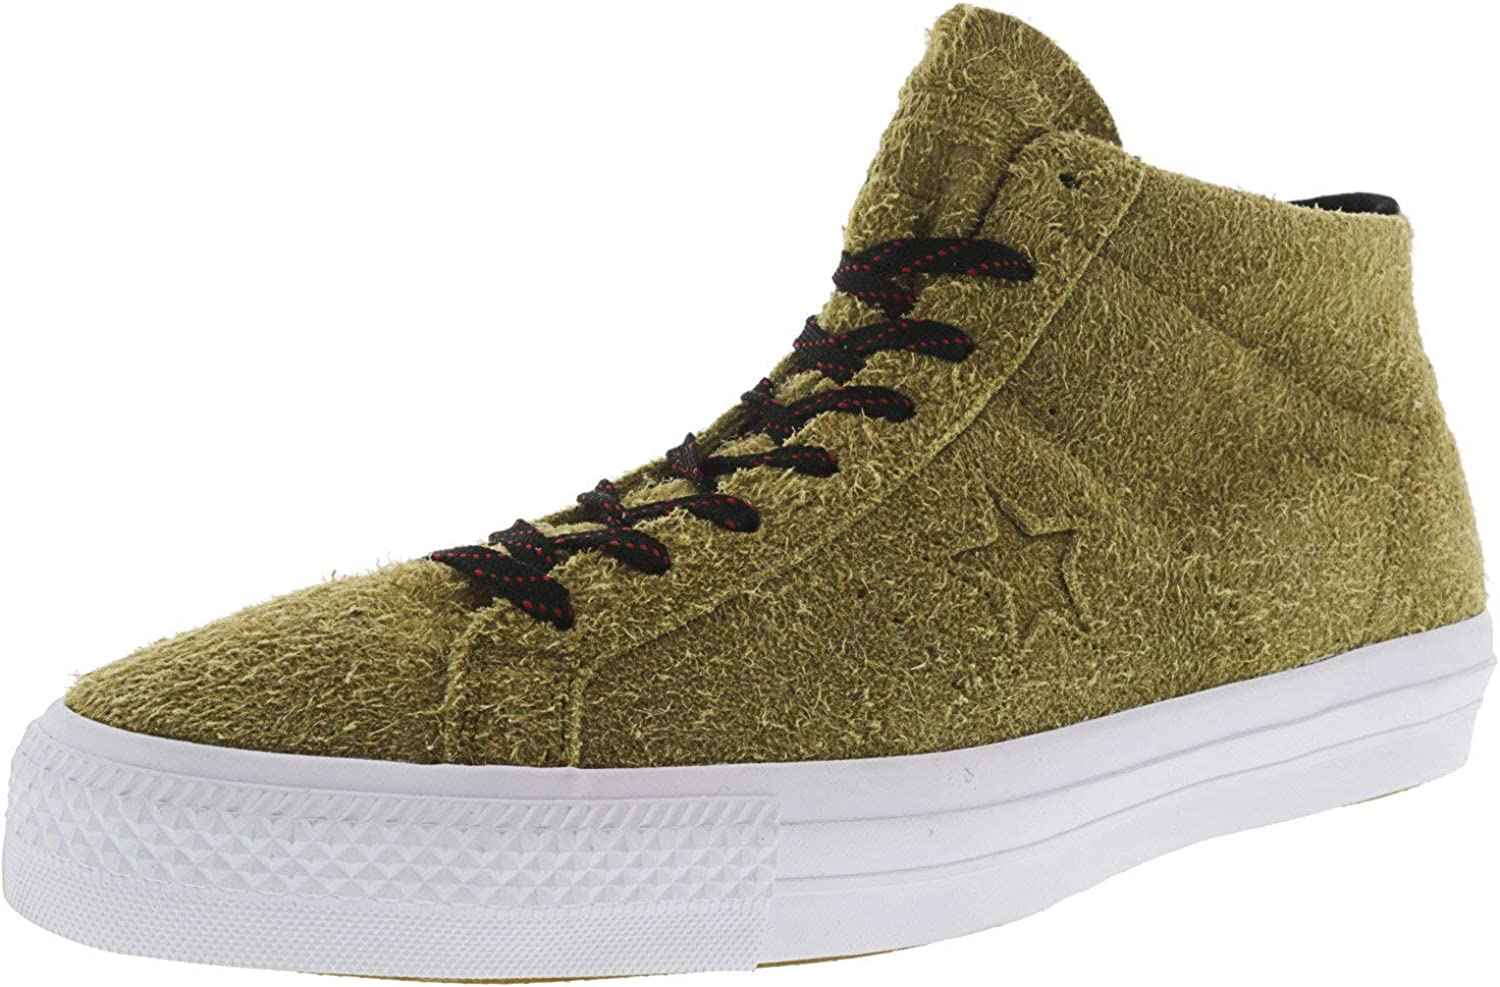 Converse One Star Pro Suede Mid Mid-Top Fashion Sneaker